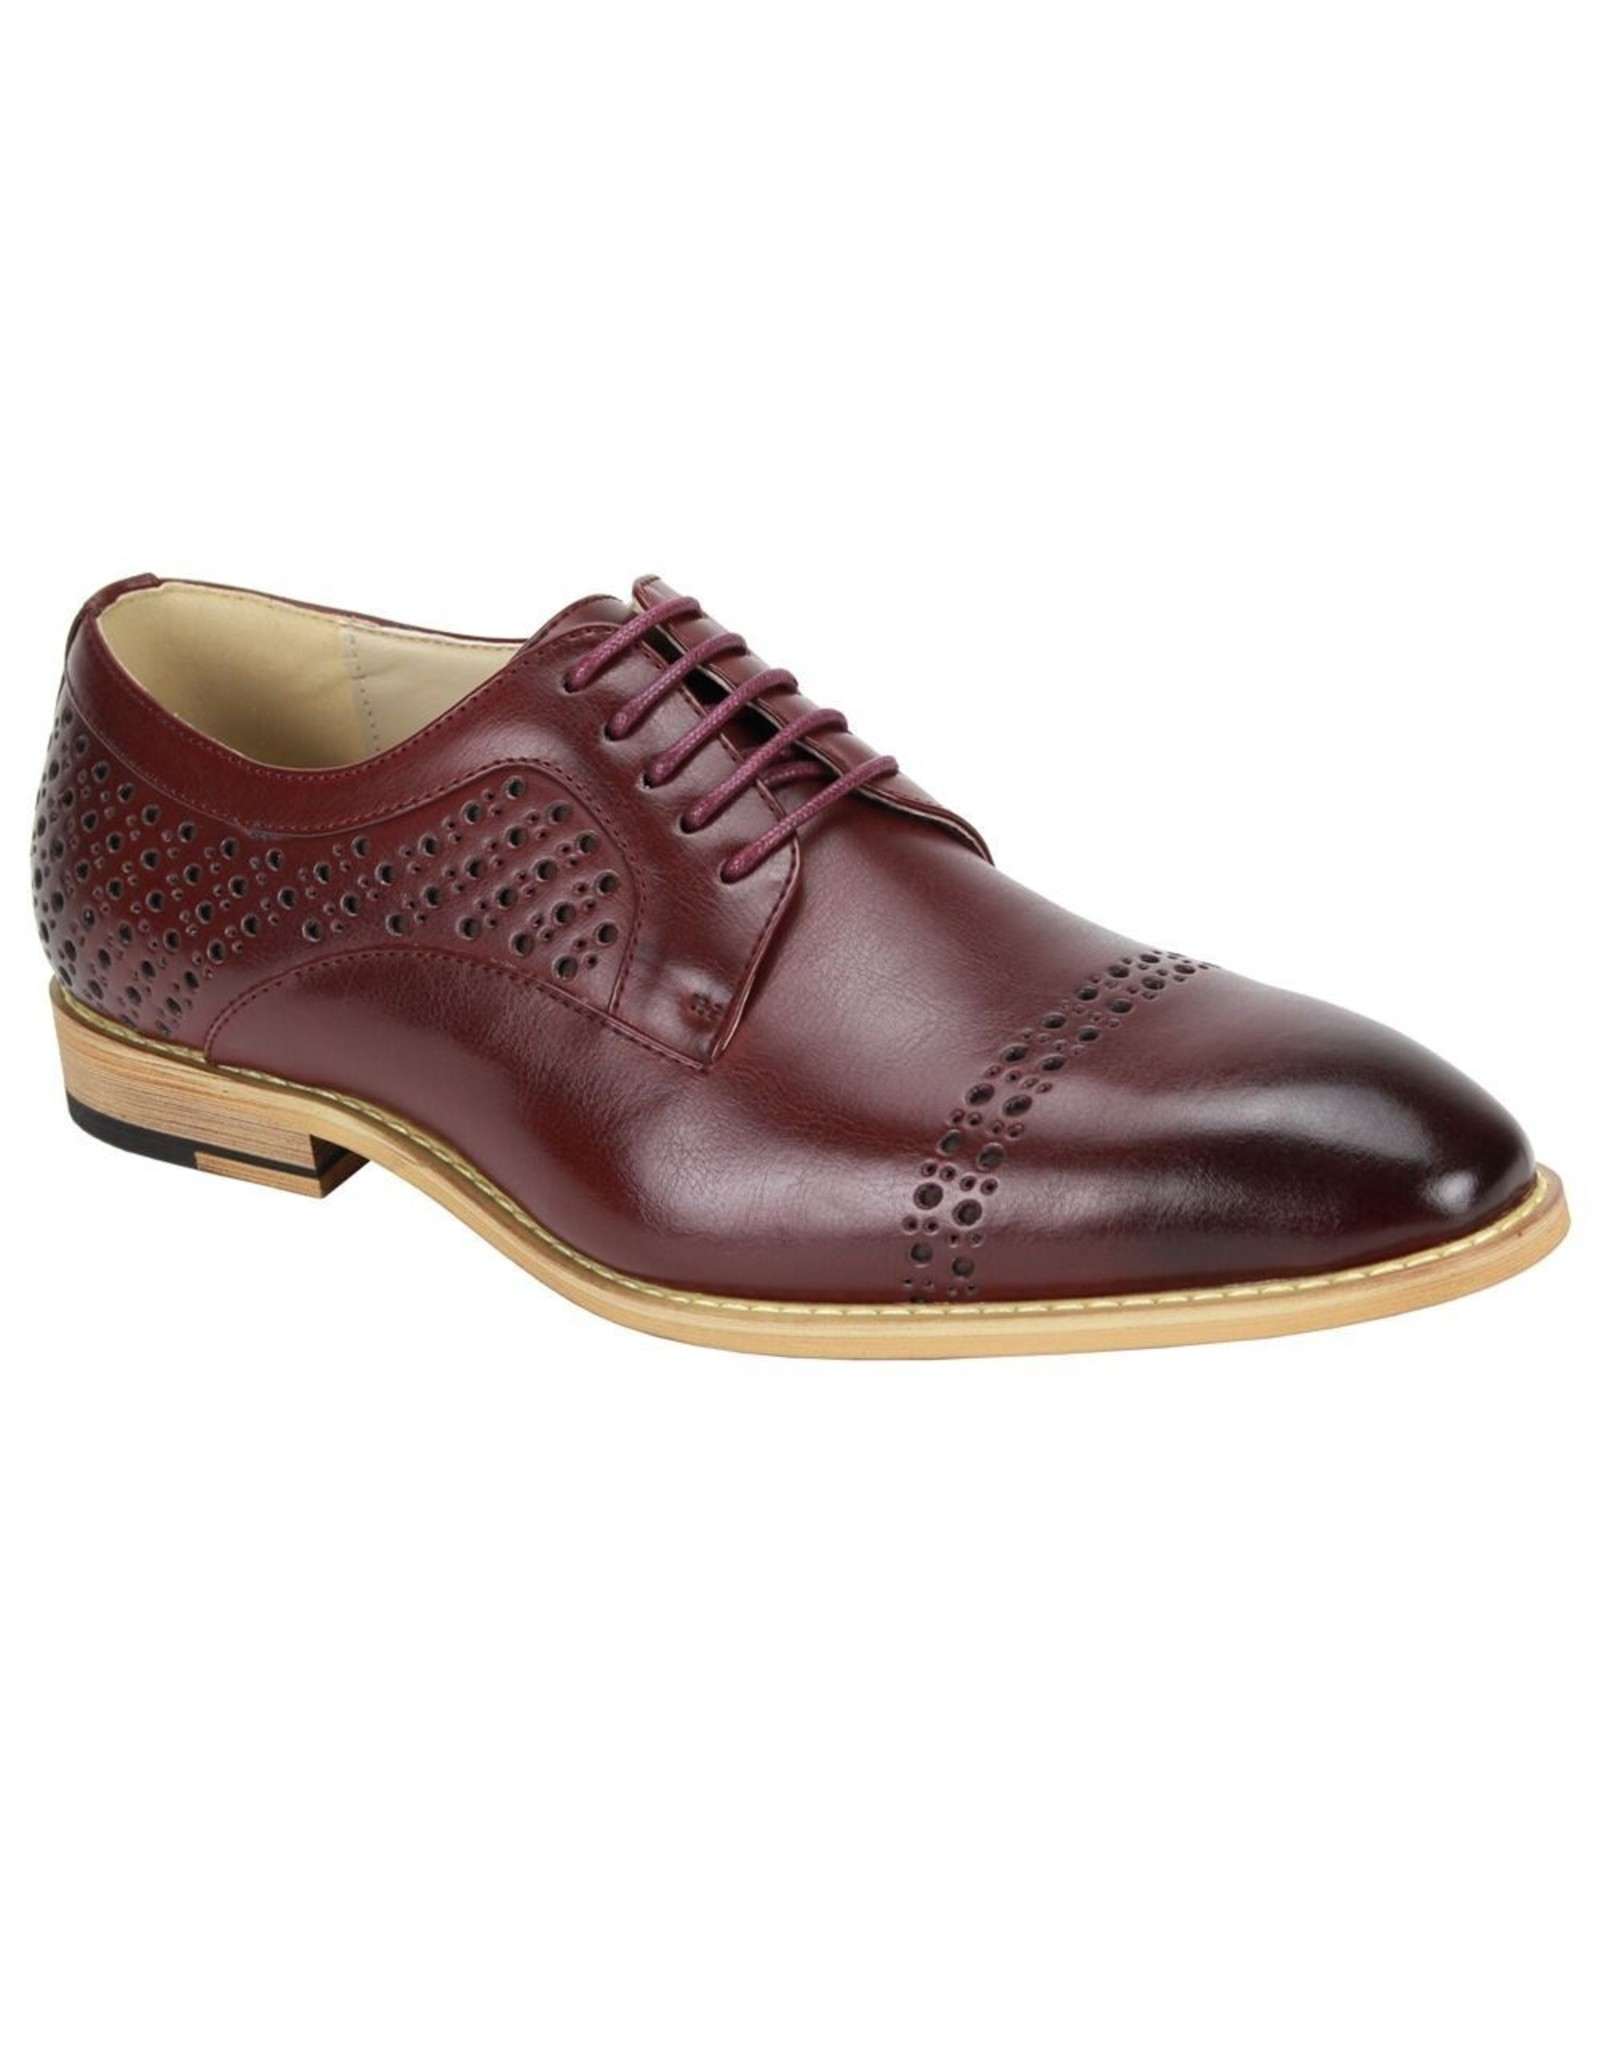 Antonio Cerrelli Antonio Cerrelli 6812 Dress Shoe - Burgundy